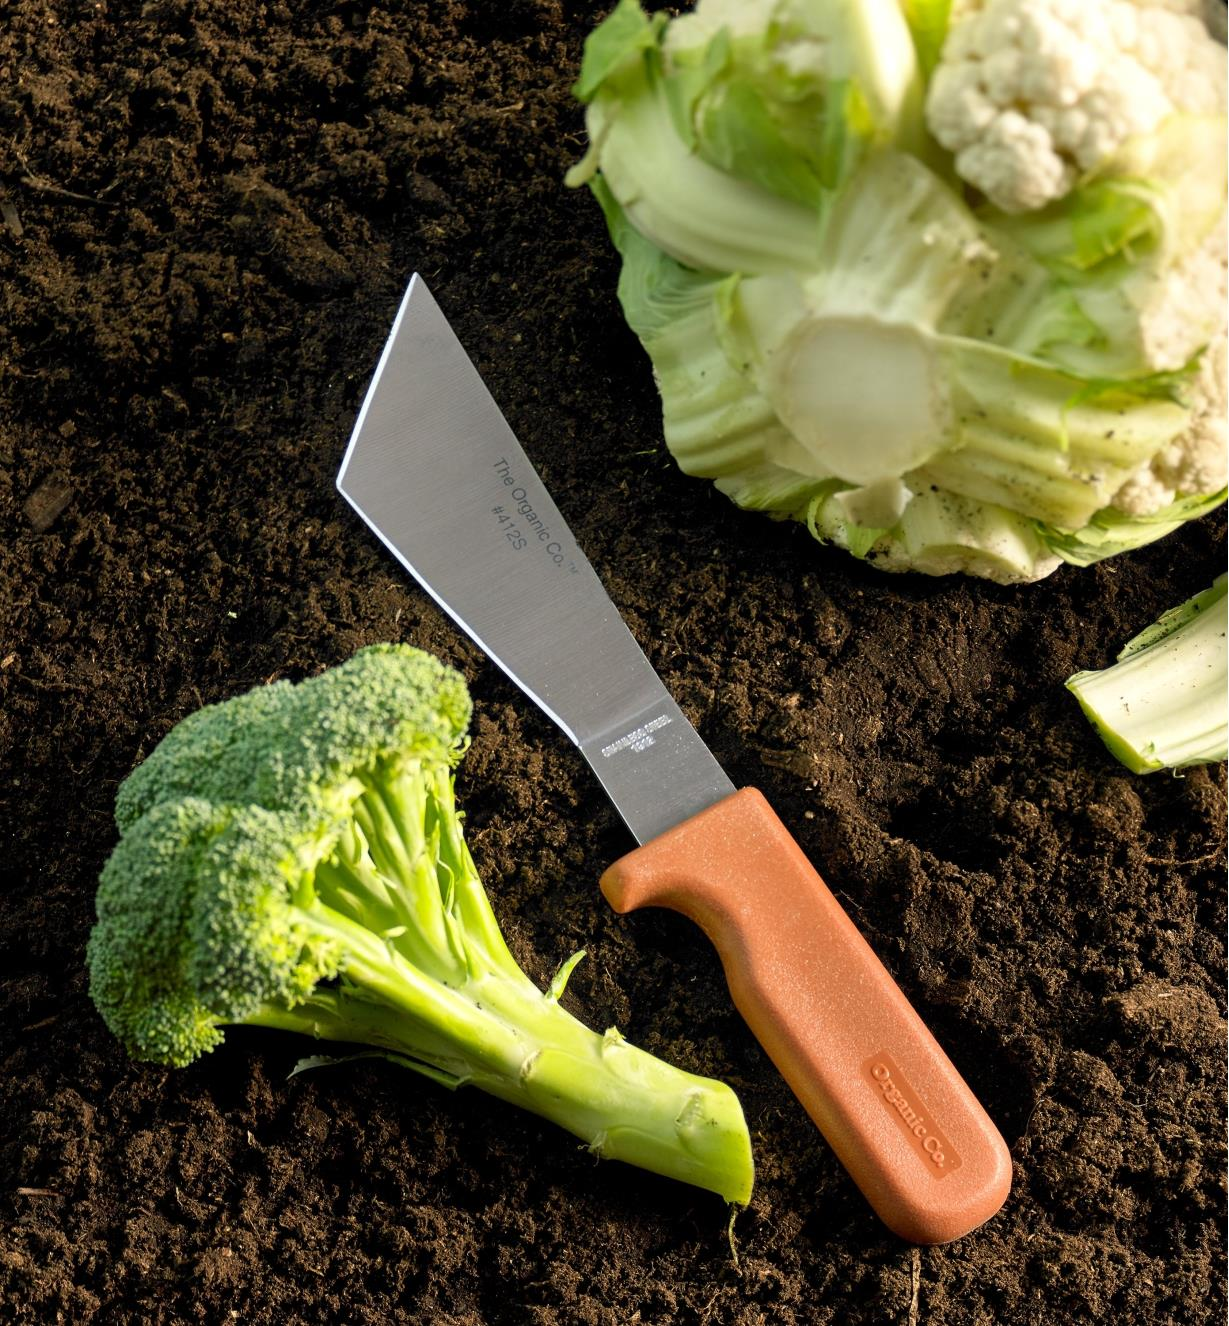 Harvest knife lying on soil between a broccoli floret and a head of cauliflower